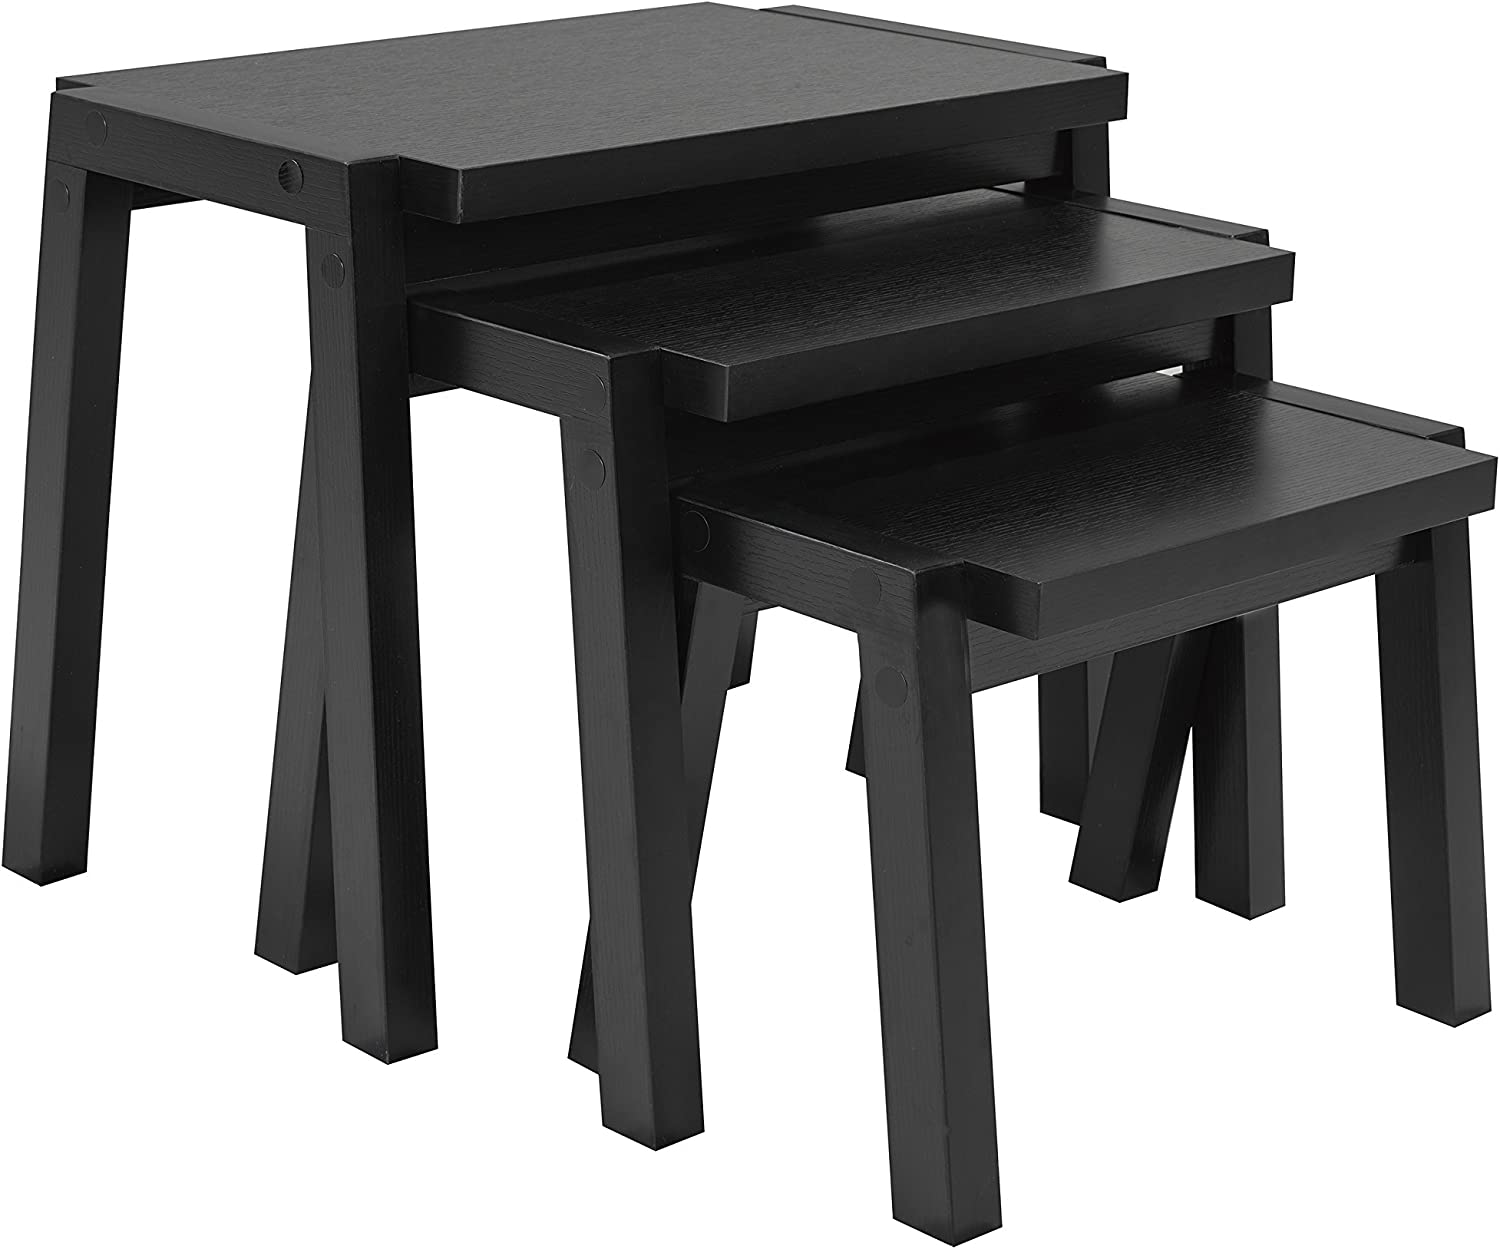 Brassex 161580-X3 Solid Wood 3 Piece Nesting Table Set in Black